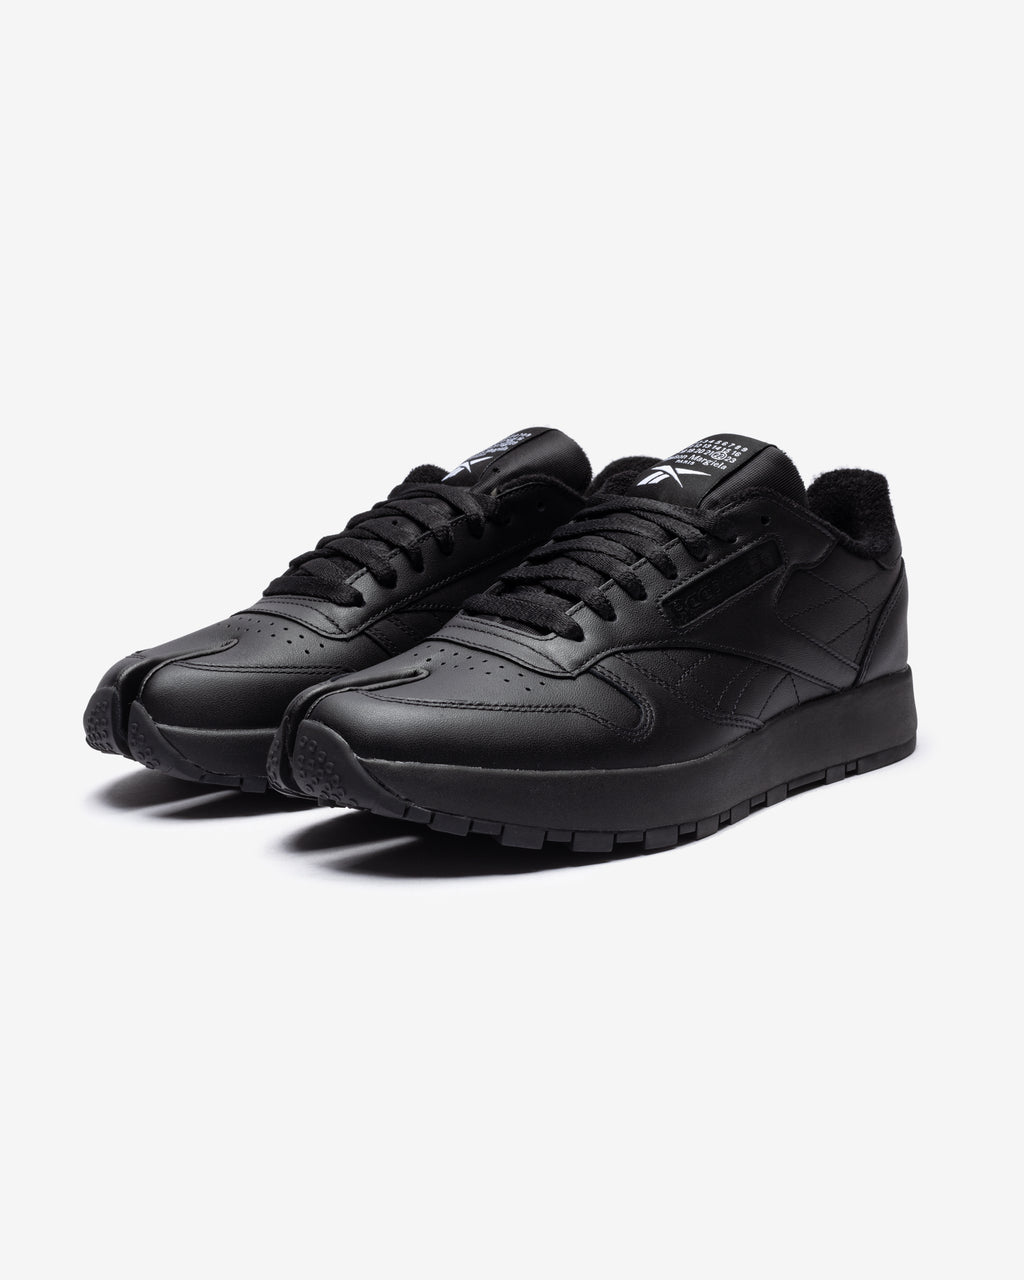 REEBOK X MAISON MARGIELA PROJECT 0 CL - BLACK/ WHITE